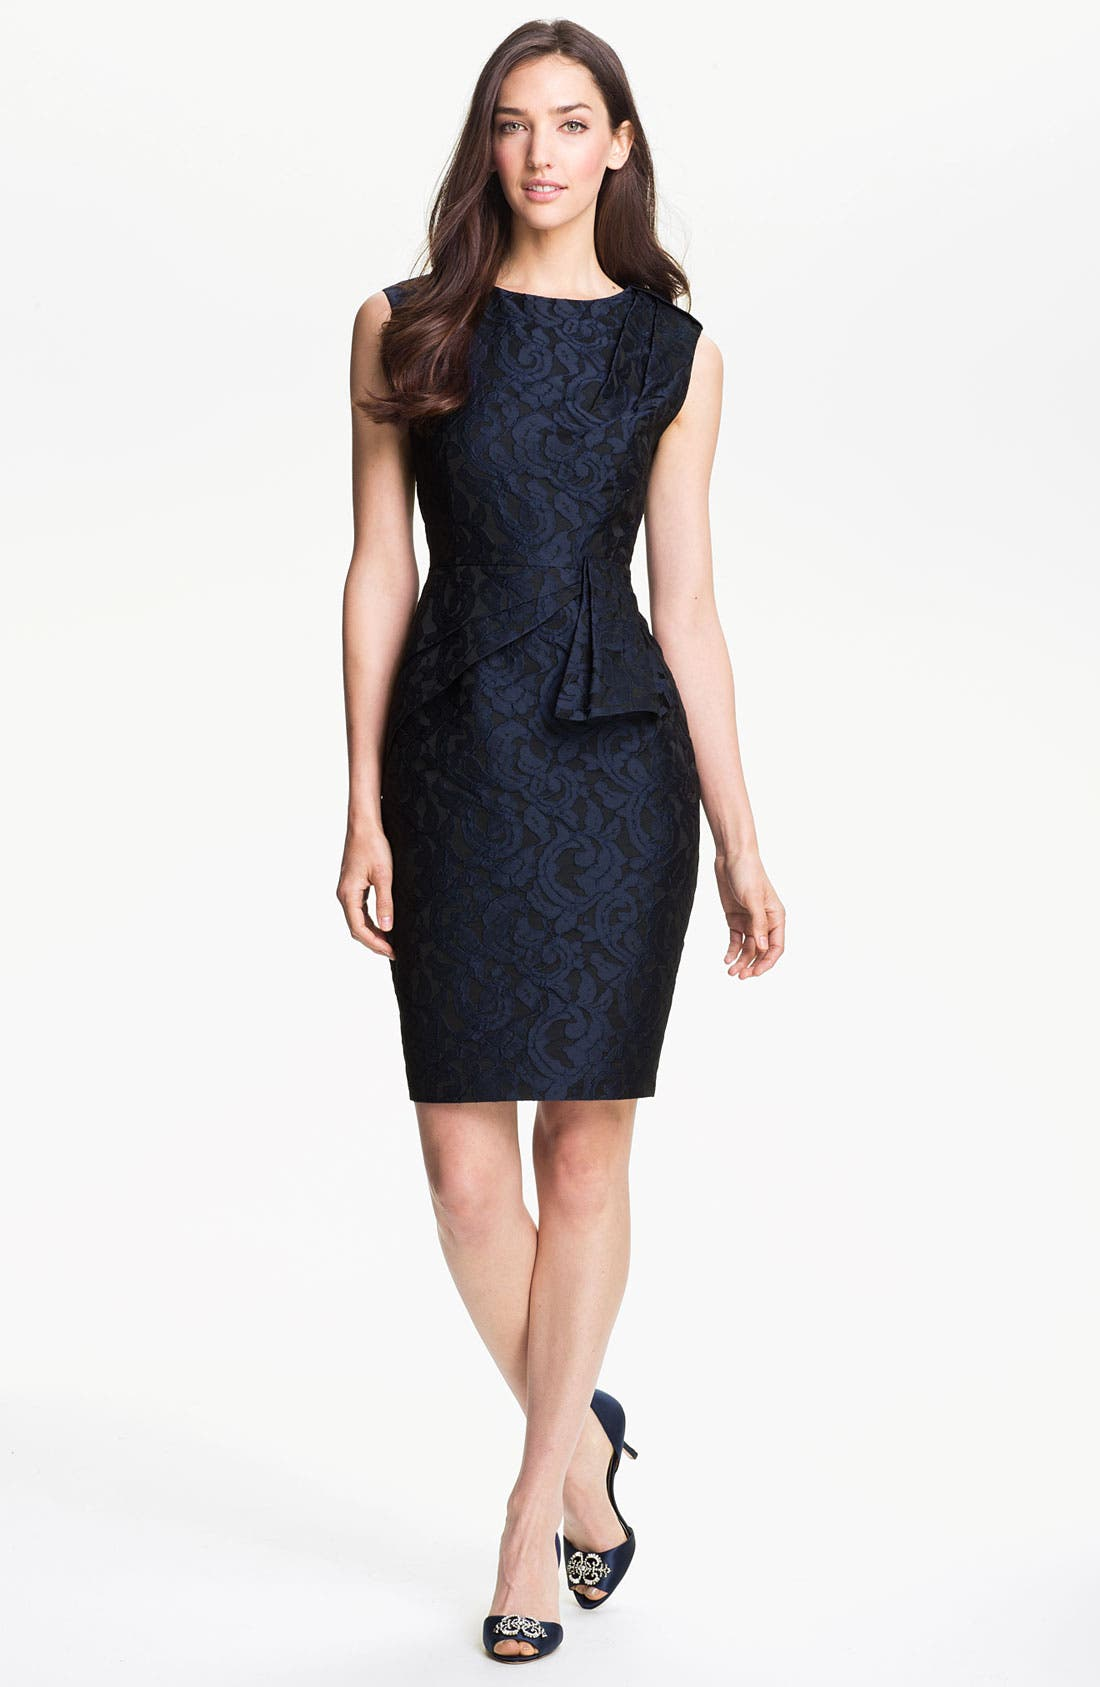 Alternate Image 1 Selected - Adrianna Papell Side Peplum Jacquard Sheath Dress